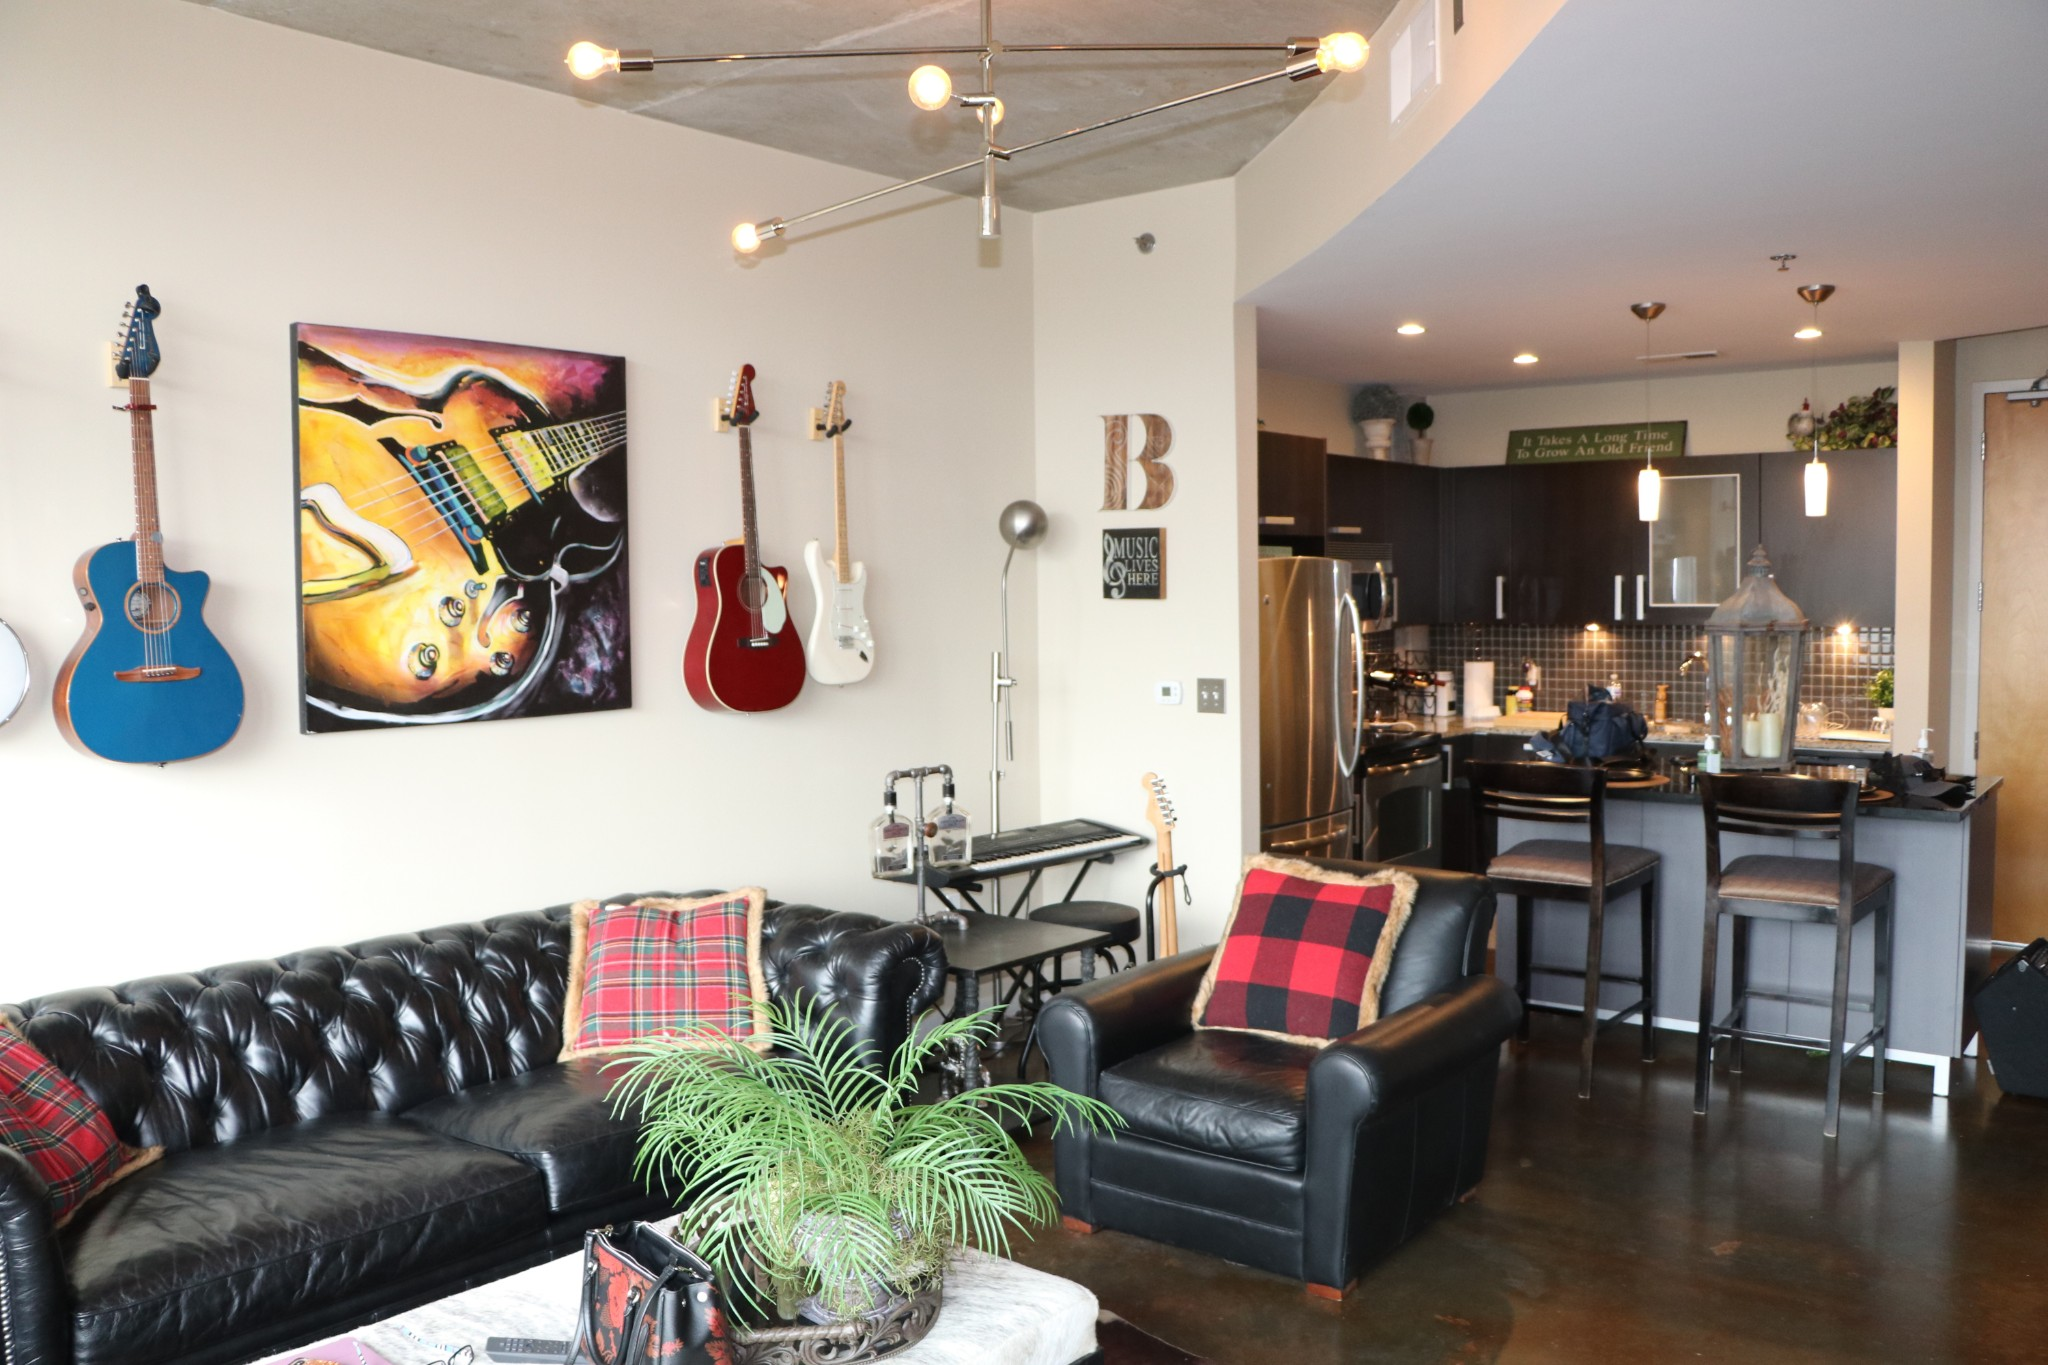 600 12th Ave, S, one of homes for sale in Nashville - Midtown